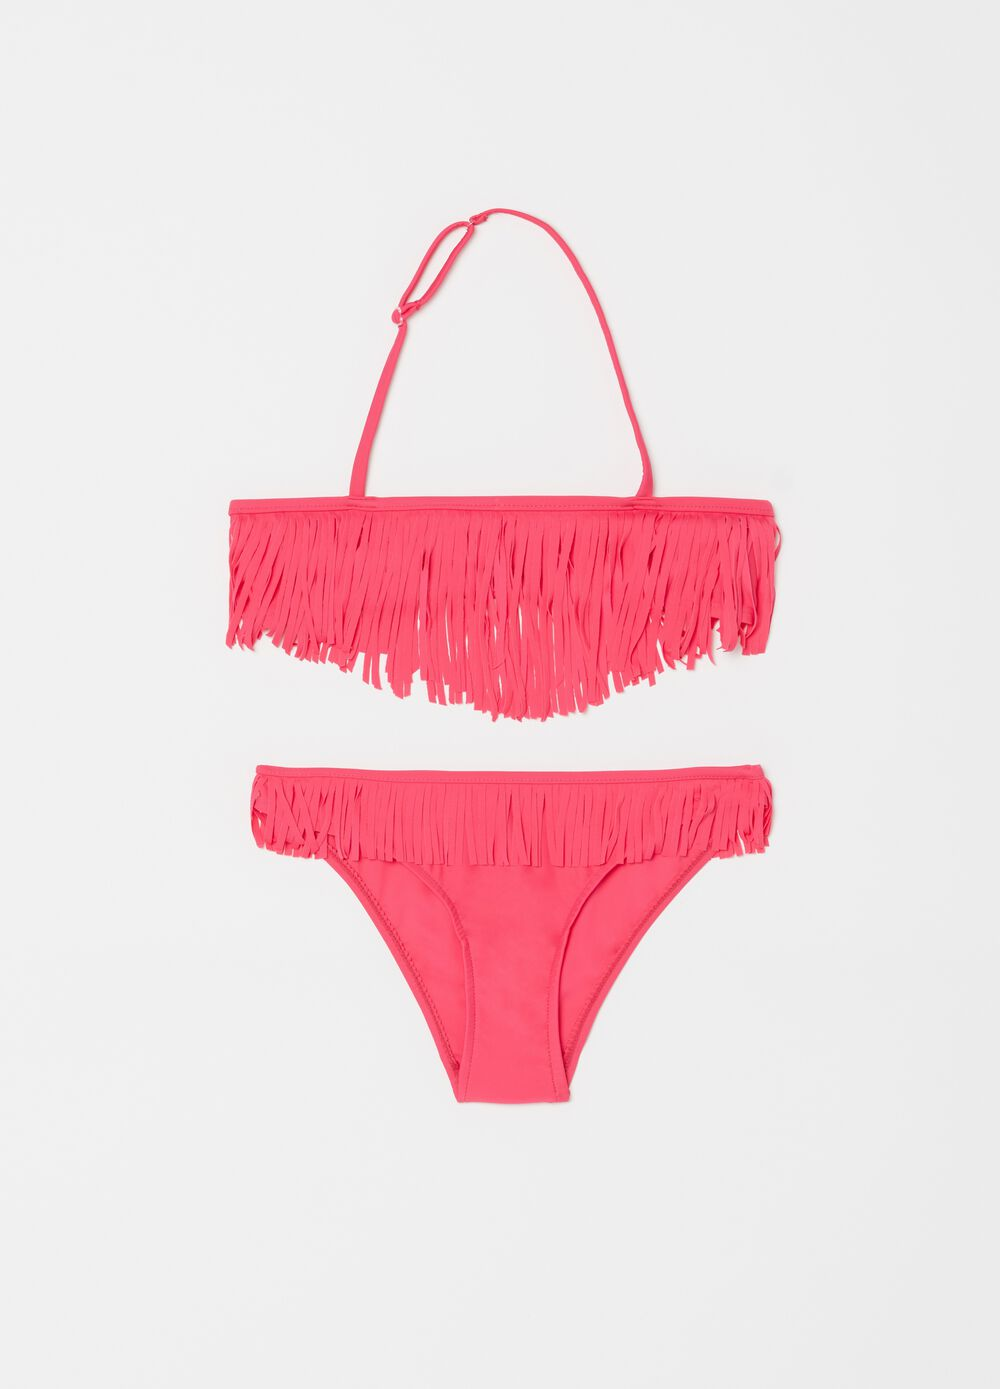 Solid colour bandeau bikini top and briefs with fringing